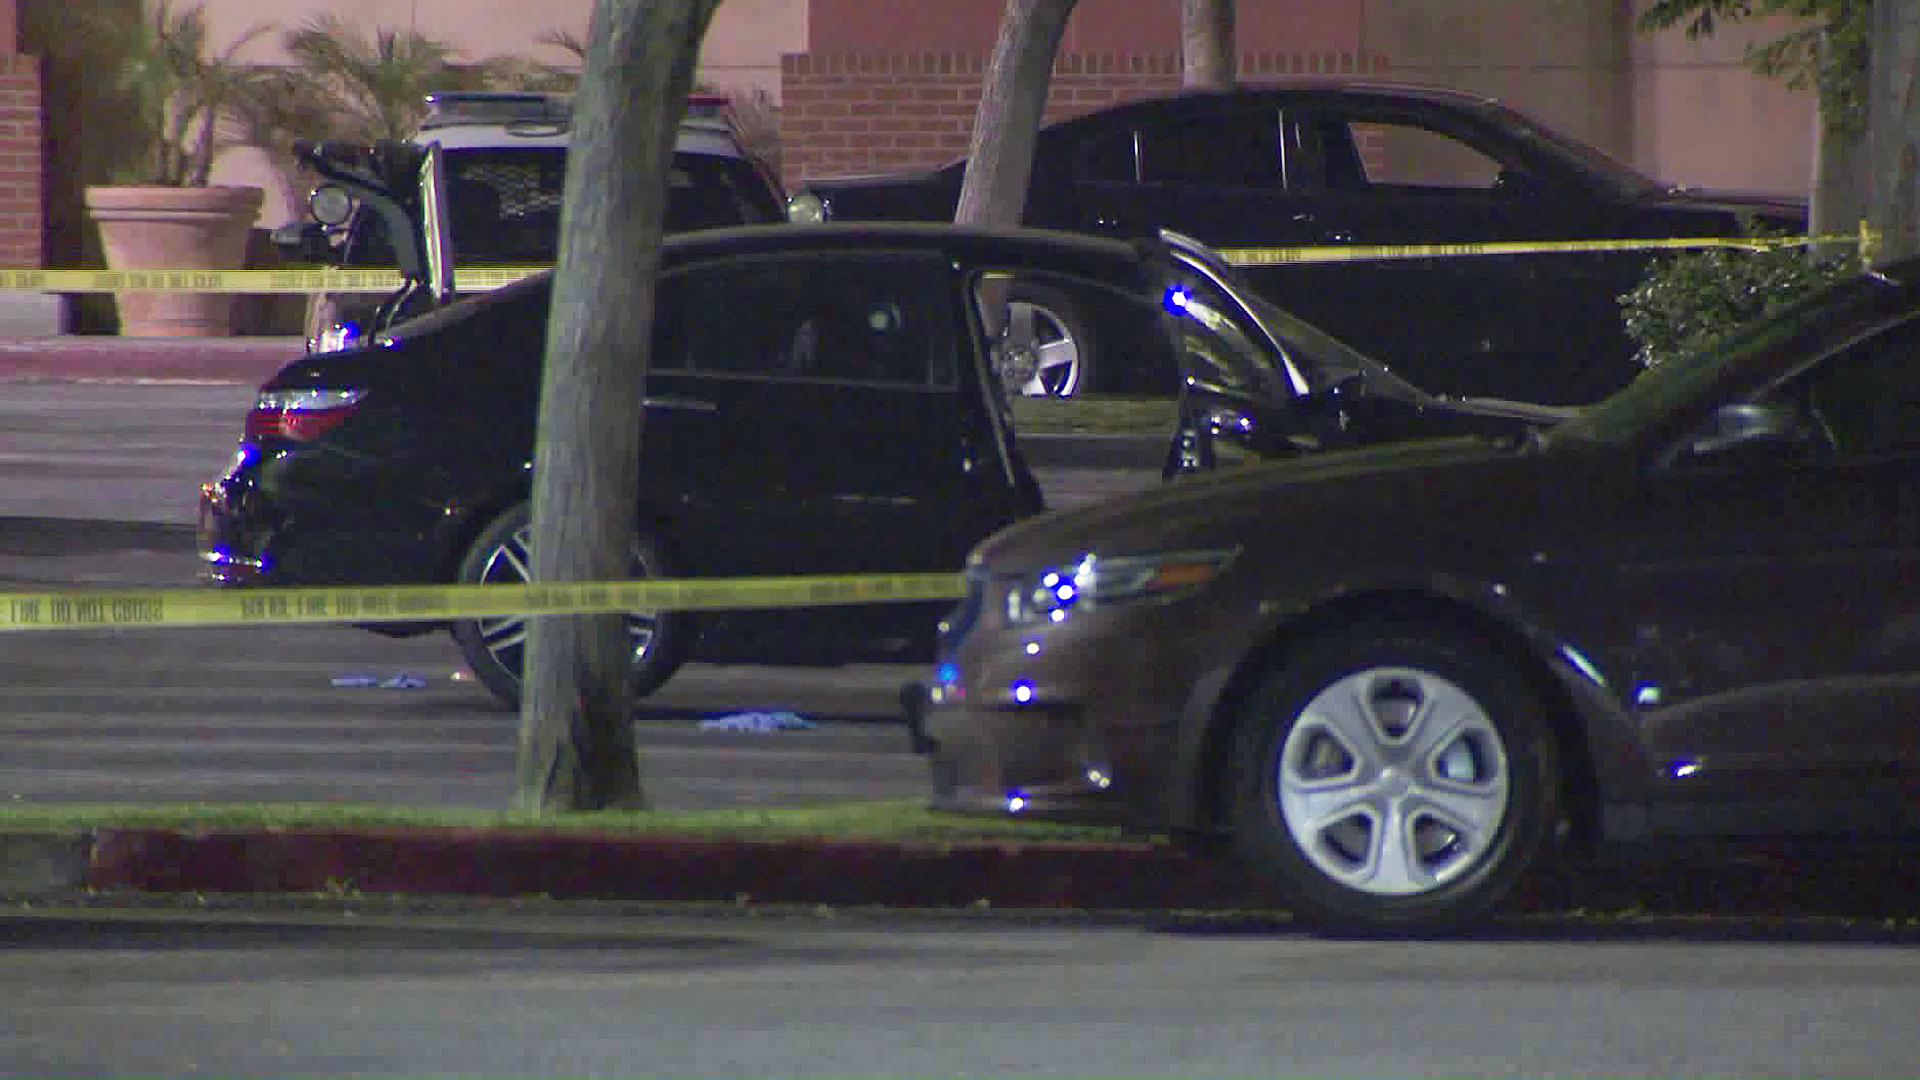 Authorities investigate a deadly shooting in Bell Gardens on July 26, 2018. (Credit: KTLA)